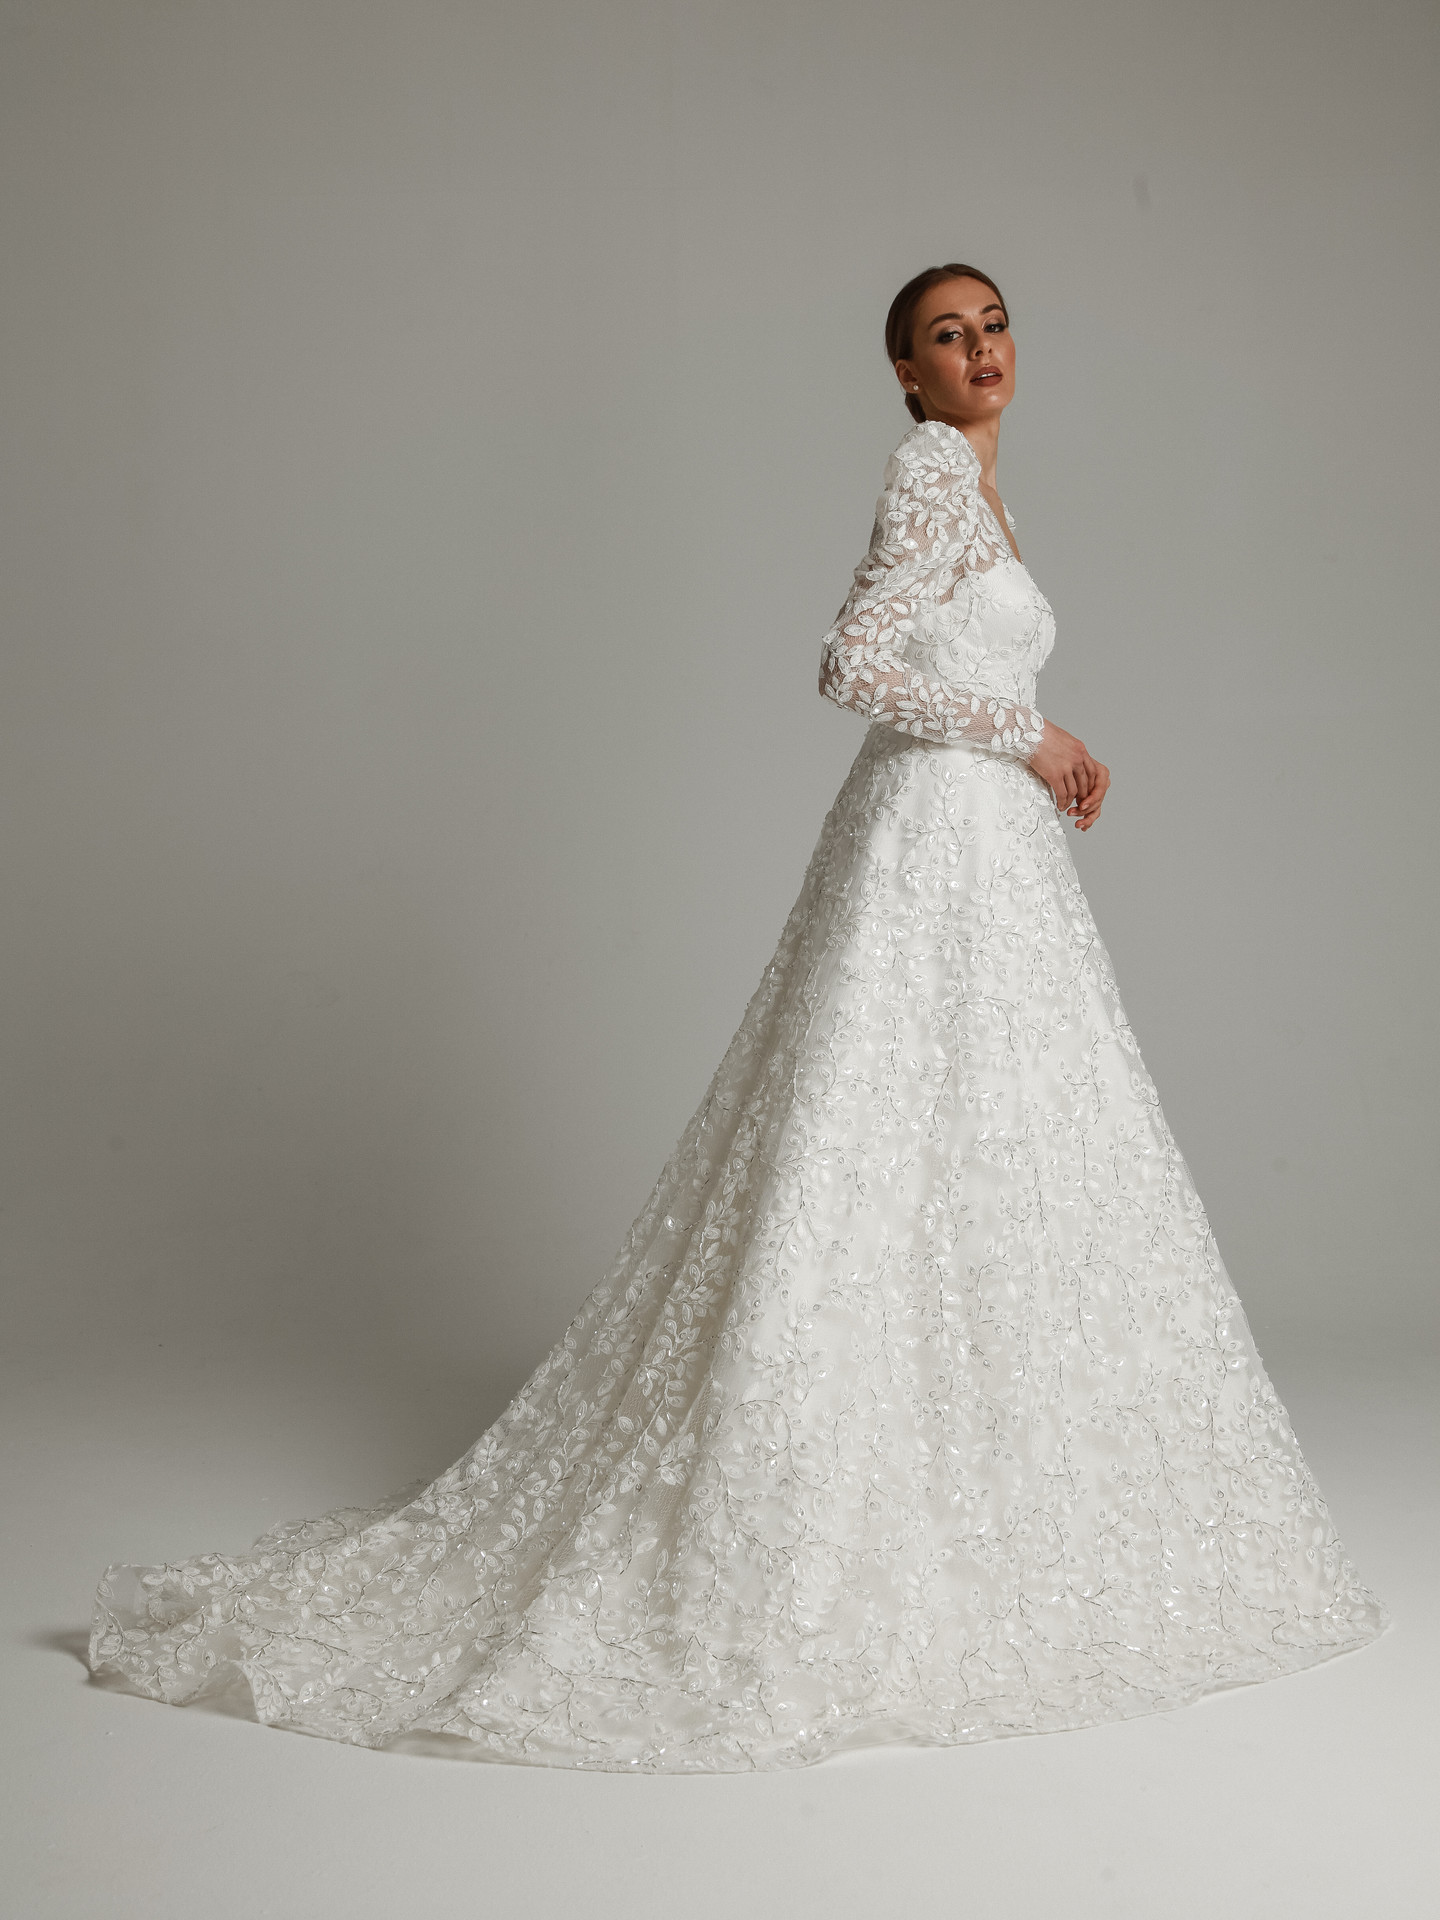 Monclair gown, 2021, couture, gown, dress, bridal, off-white, lace, A-line, embroidery, train, sleeves